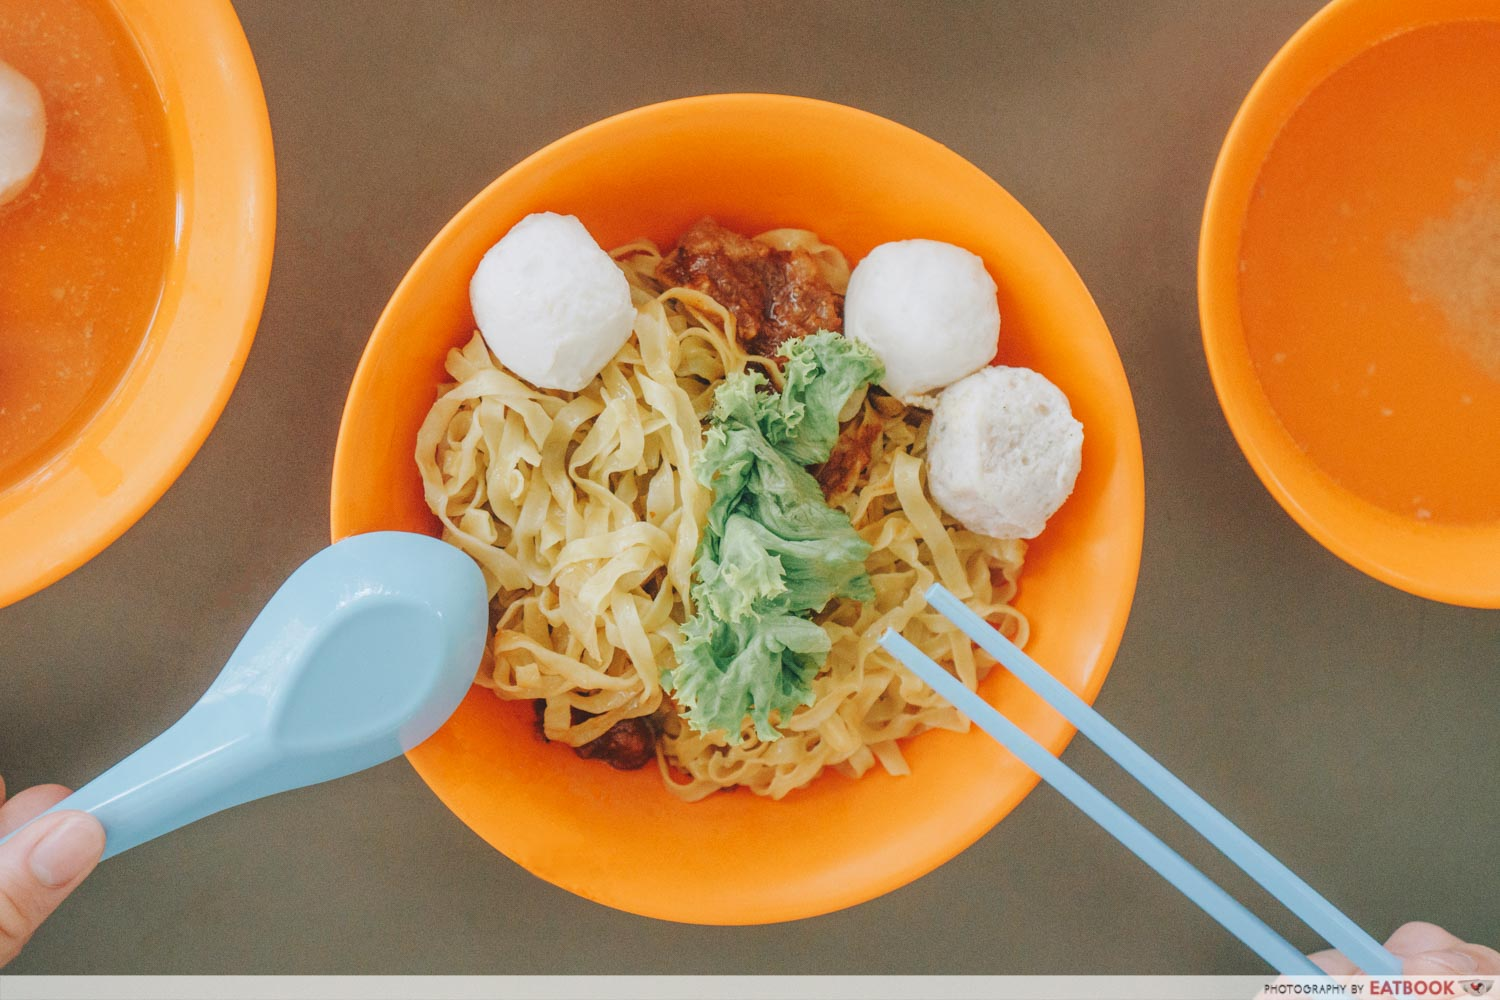 Yong Hua Delights - Fishball and meatball noodles intro shot